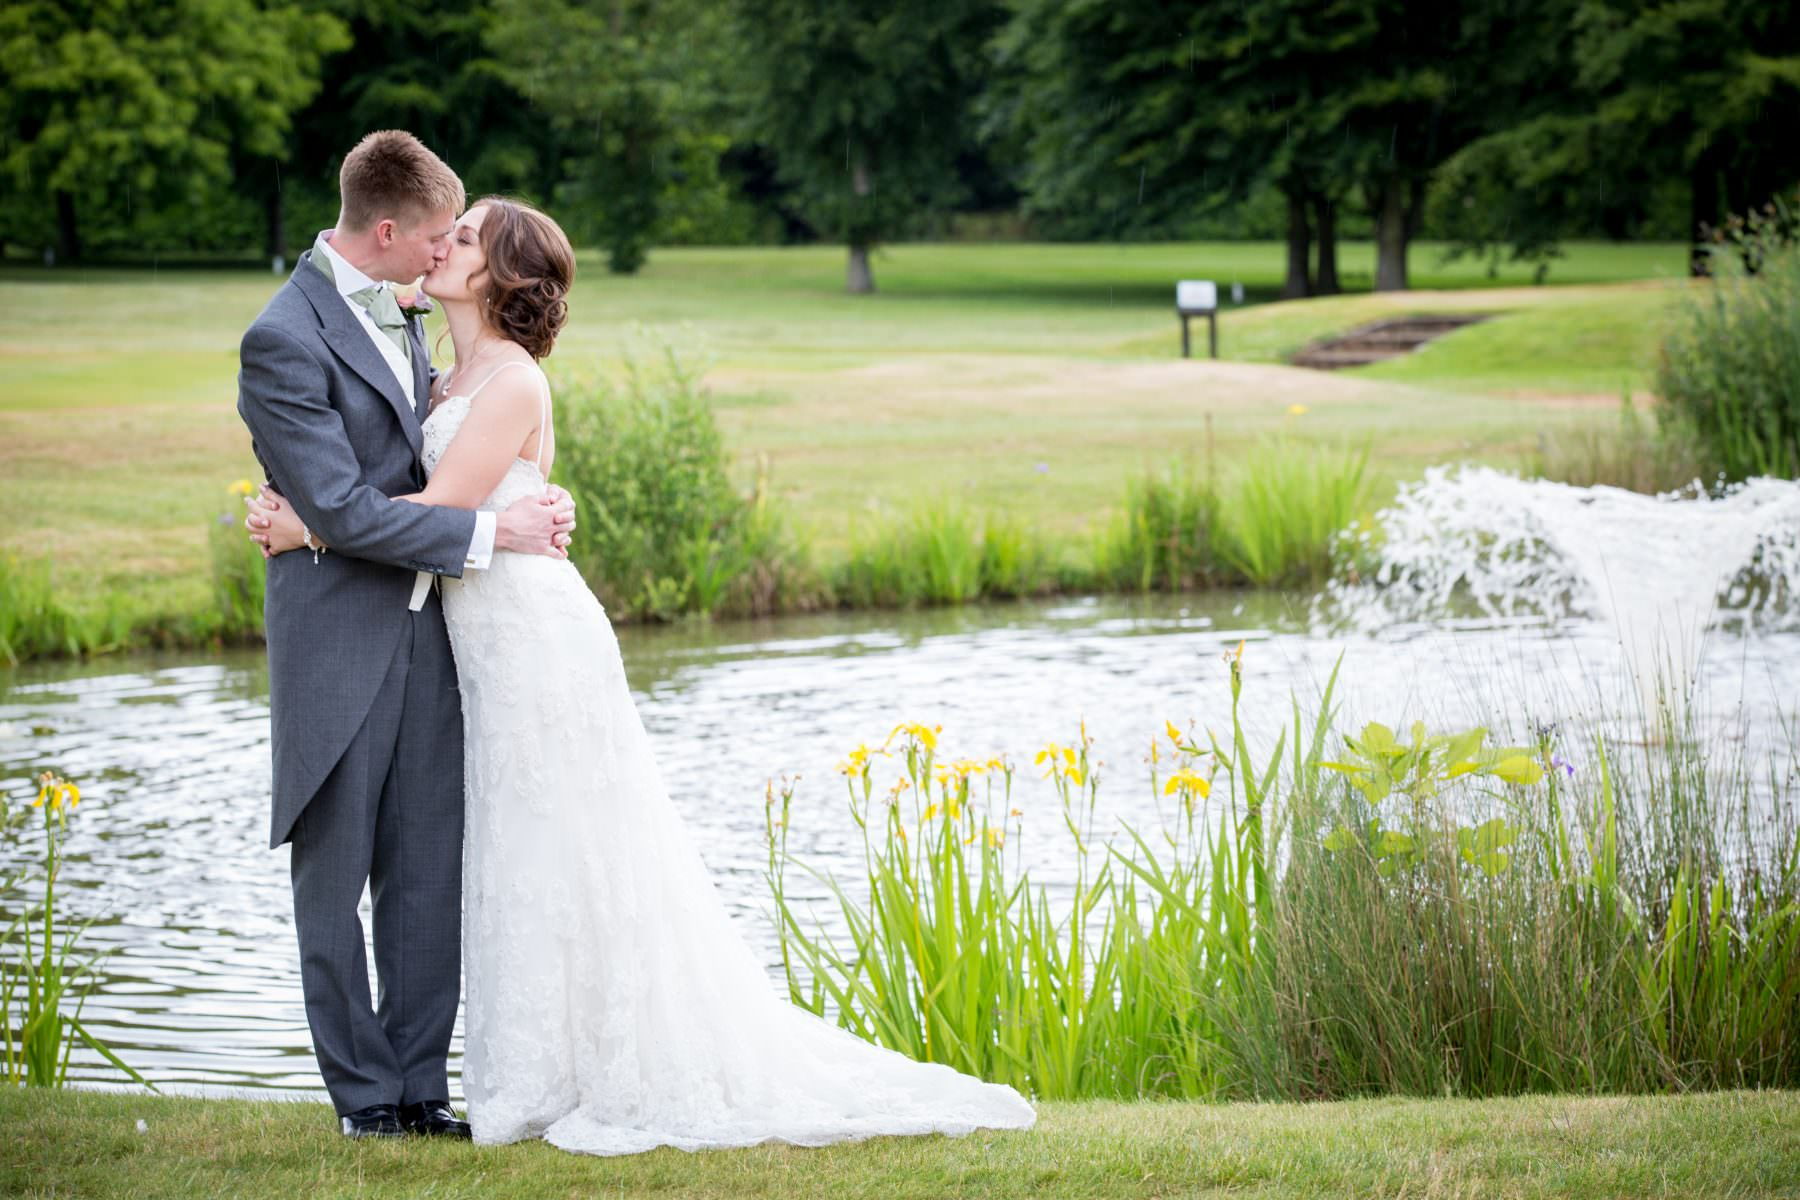 Becky and Ali's wedding at Badgemore Park Golf Club